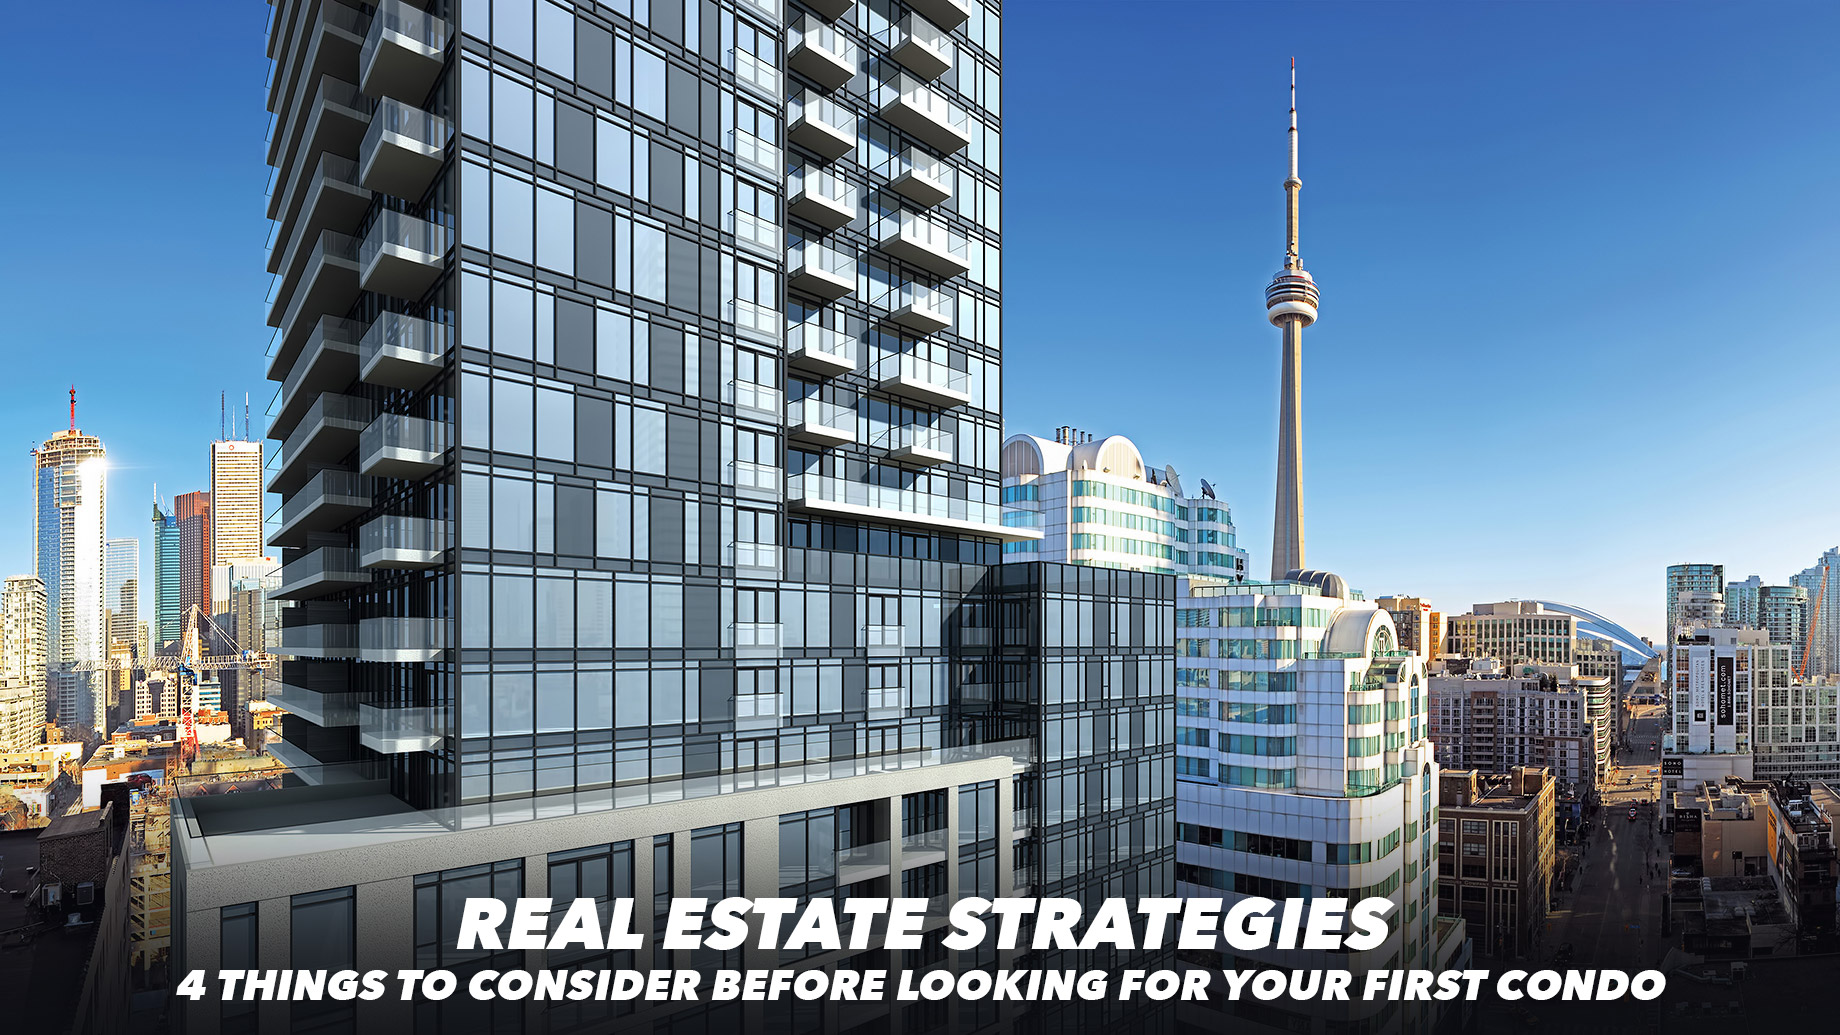 Real Estate Strategies - 4 Things to Consider Before Looking For Your First Condo